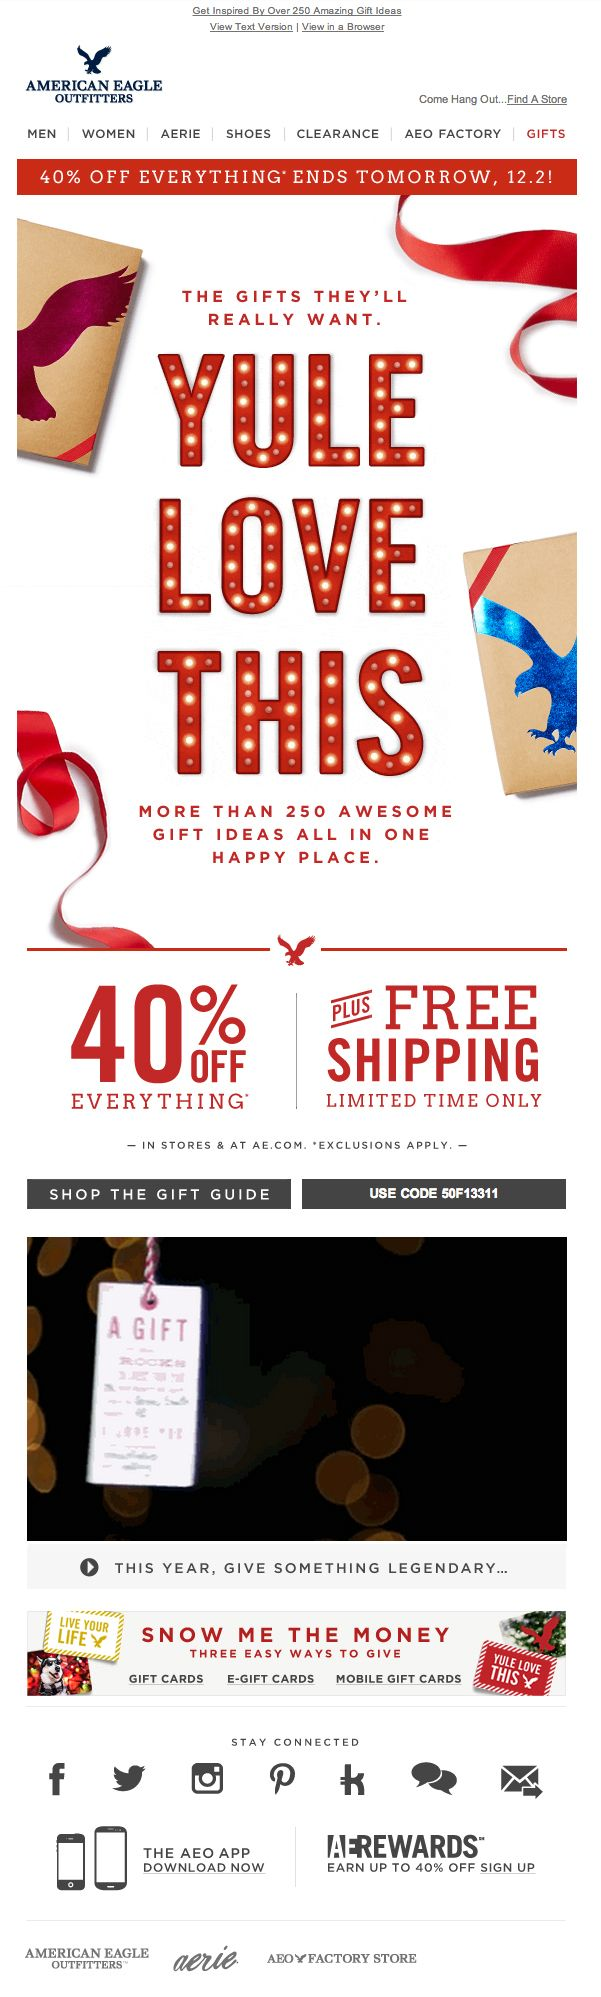 American Eagle Outfitters included an embedded video #holidayemail http://www.joesdata.com/